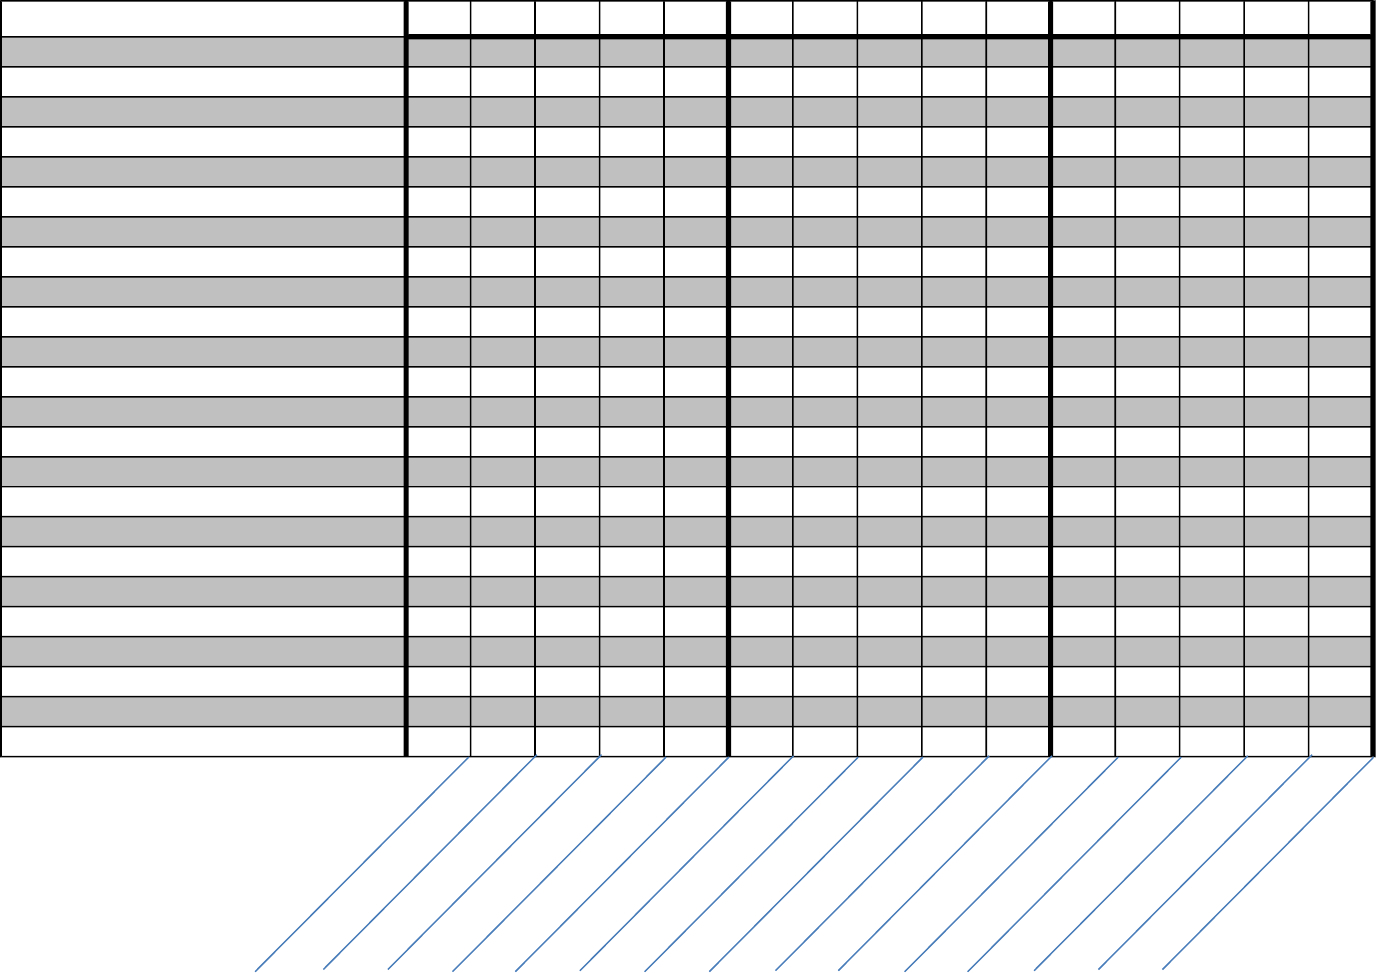 27 Images Of Paper Grade Book Template | Bfegy - Free Printable Gradebook